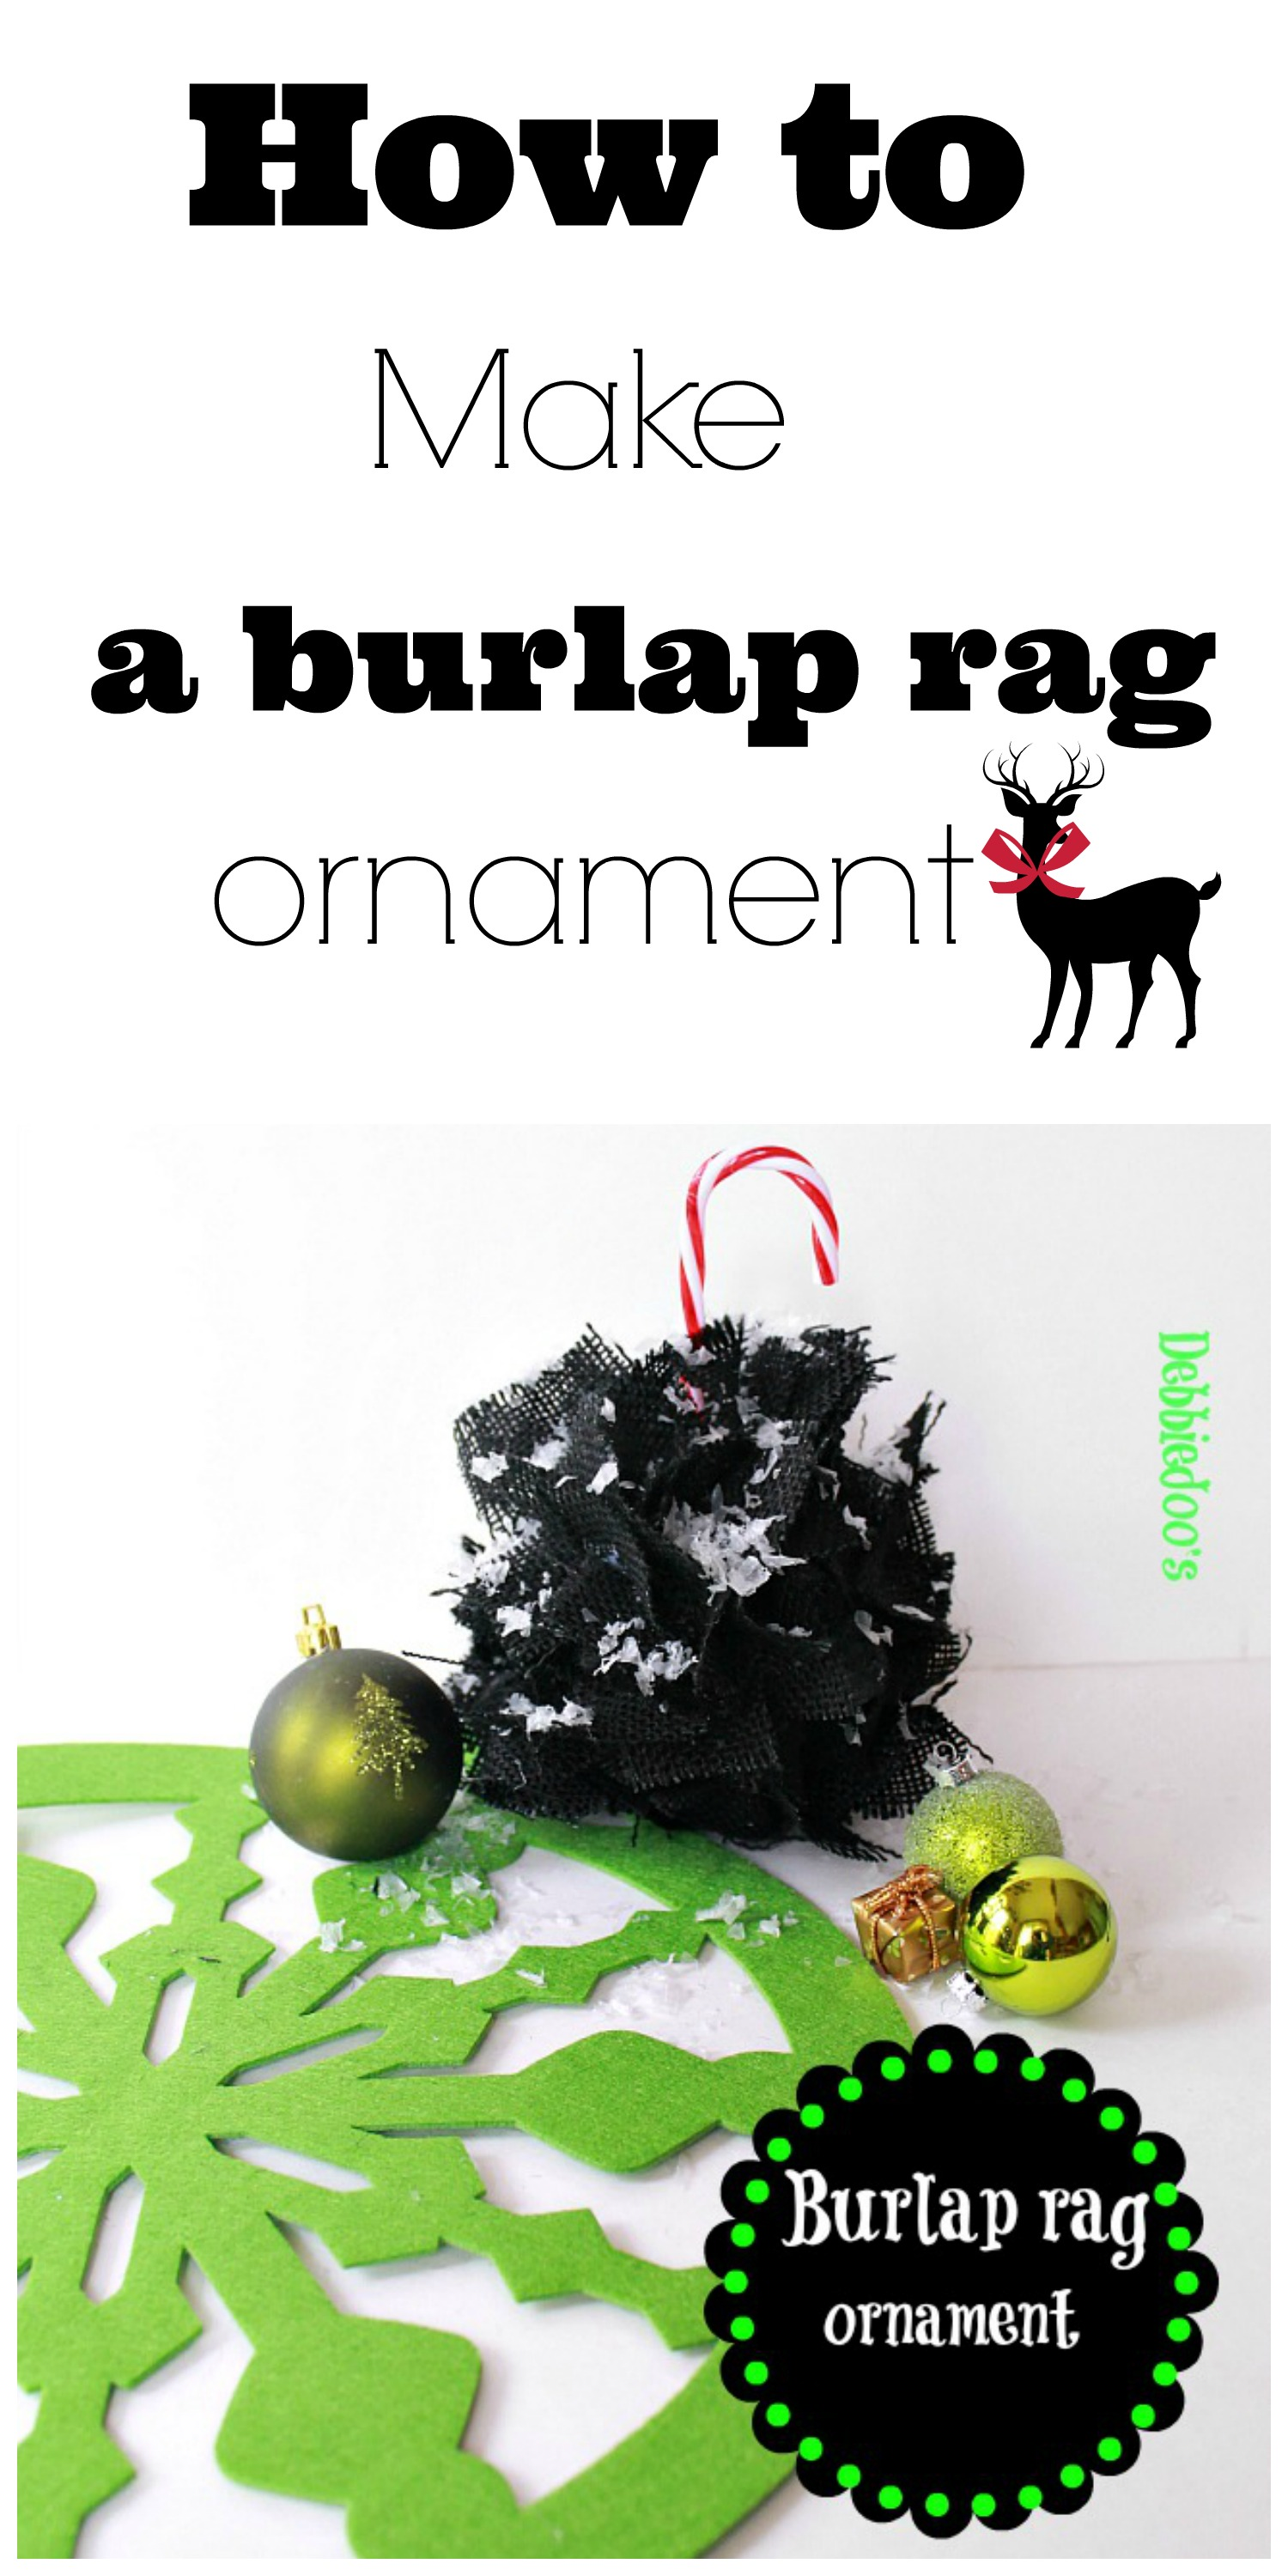 How to make a burlap rag ornament